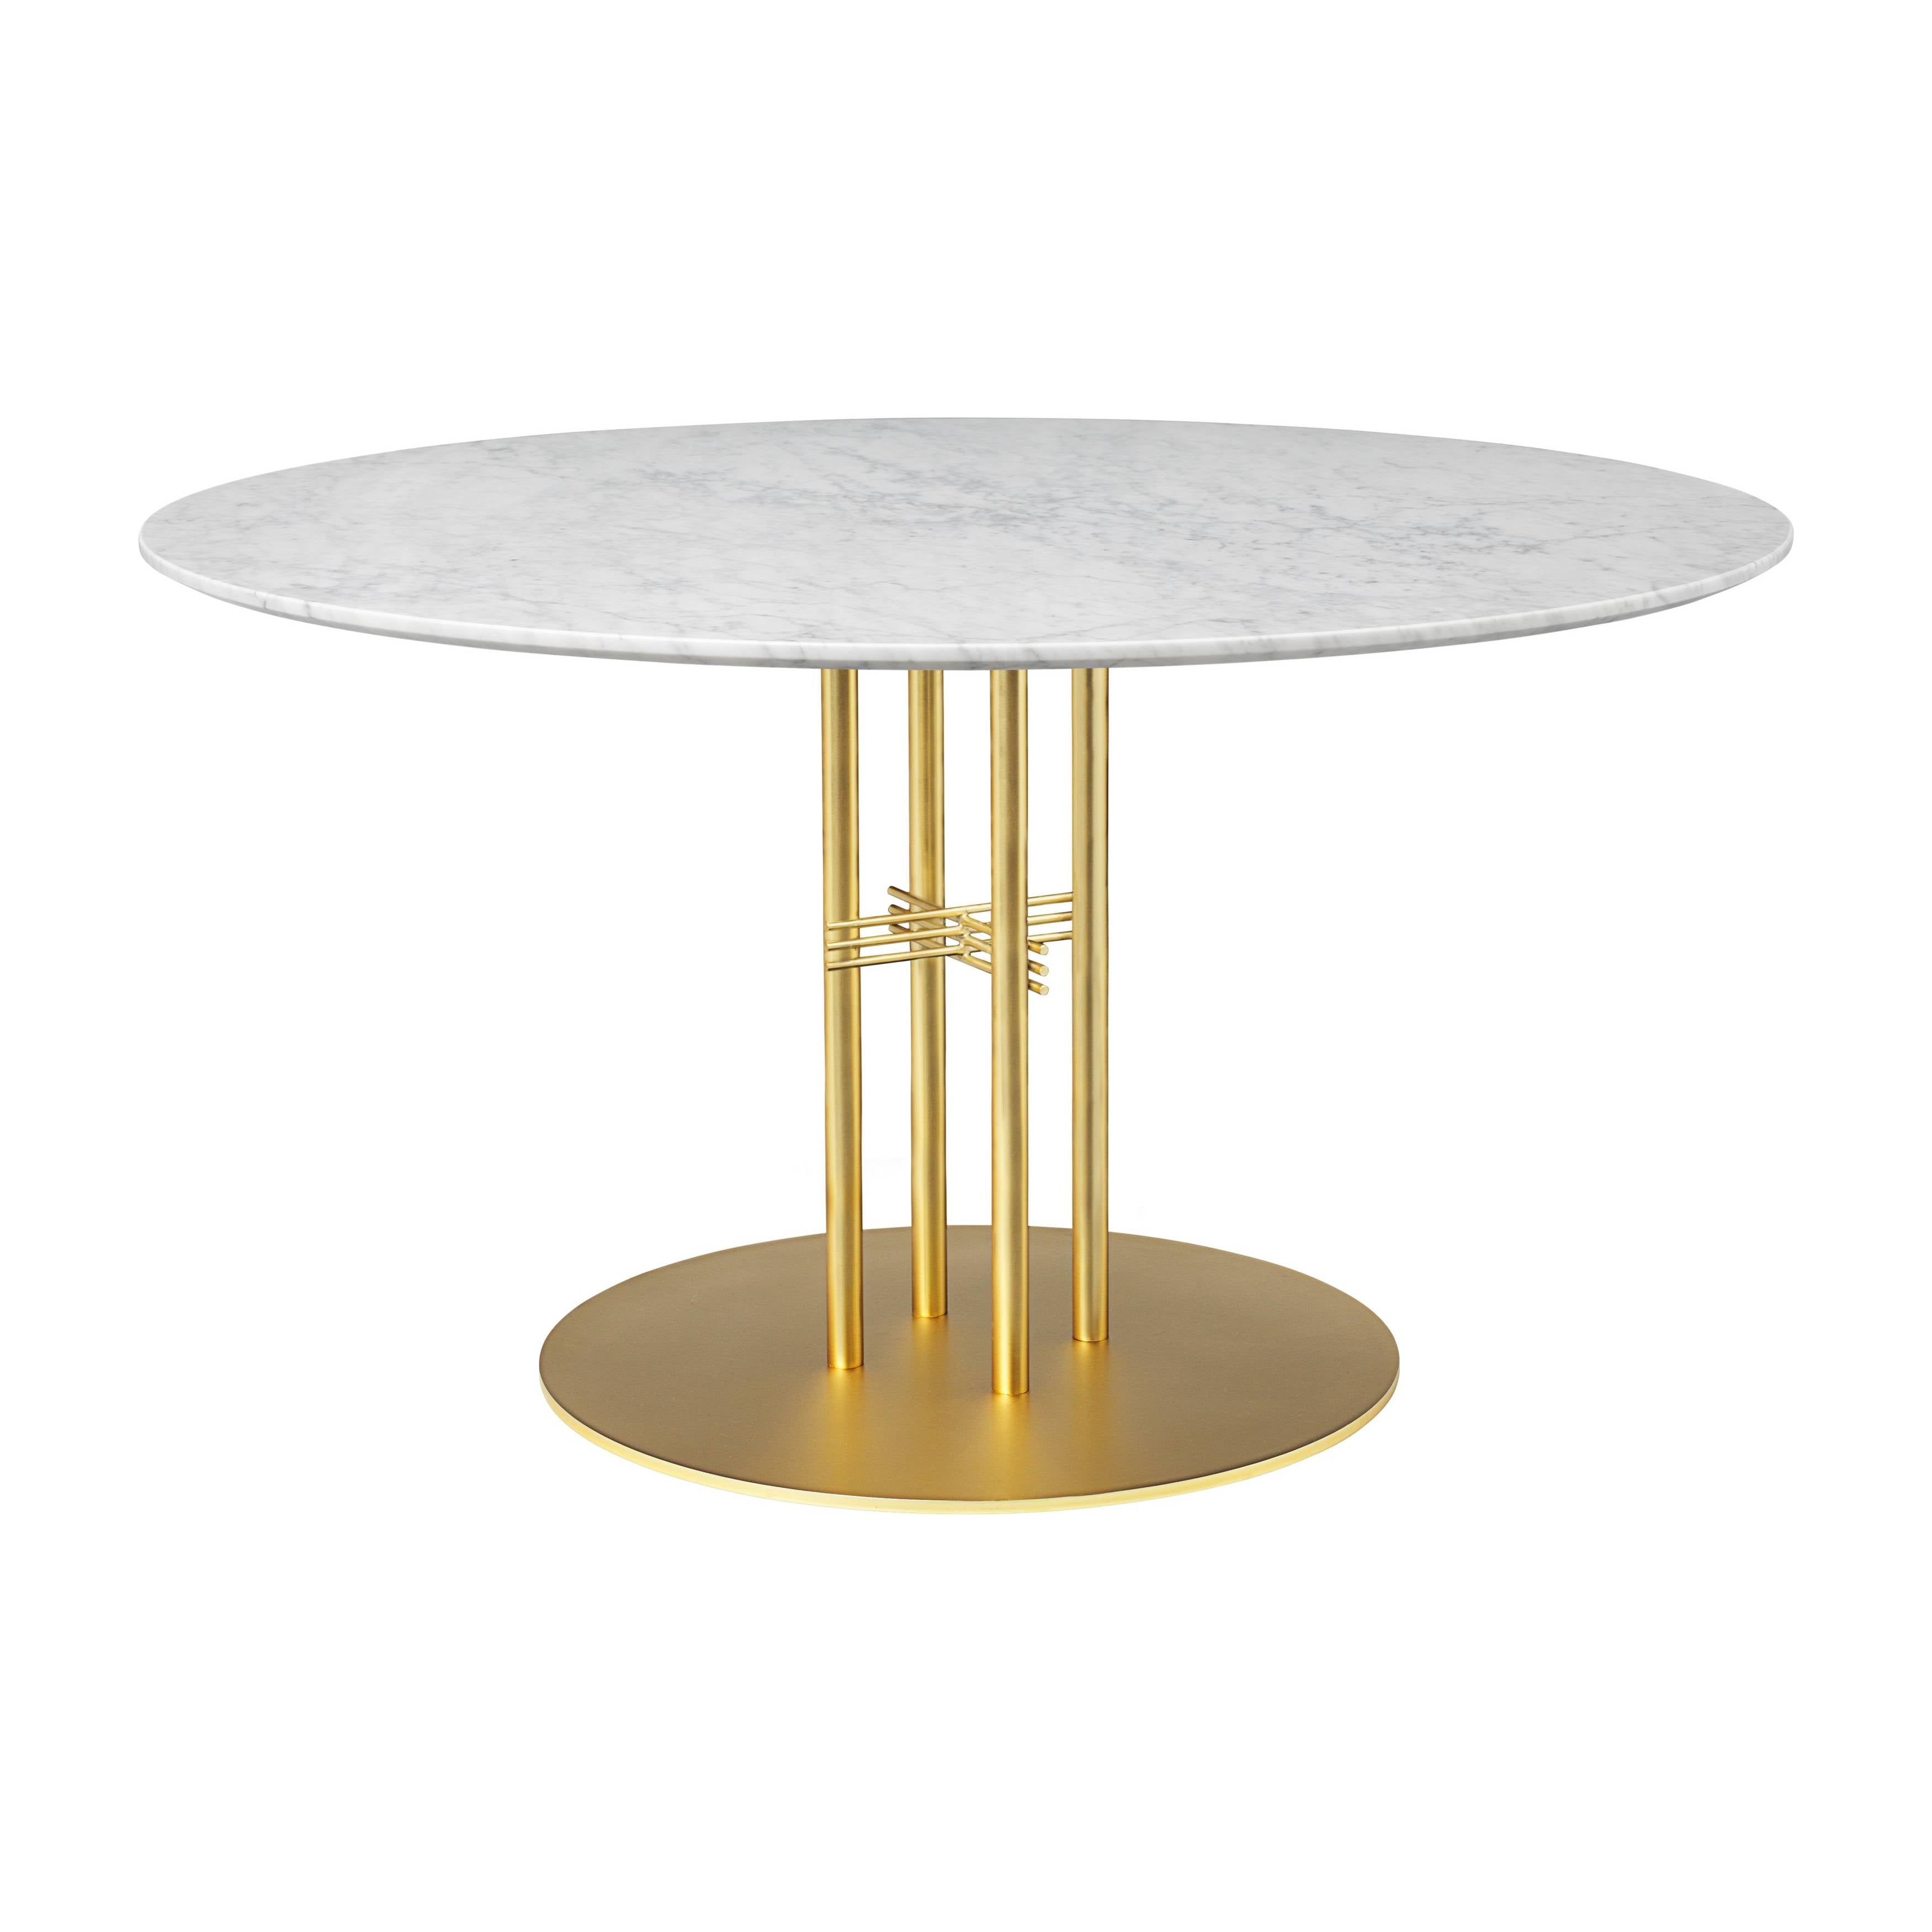 TS Column Dining Table: Large + Brass Base + White Carrara Marble